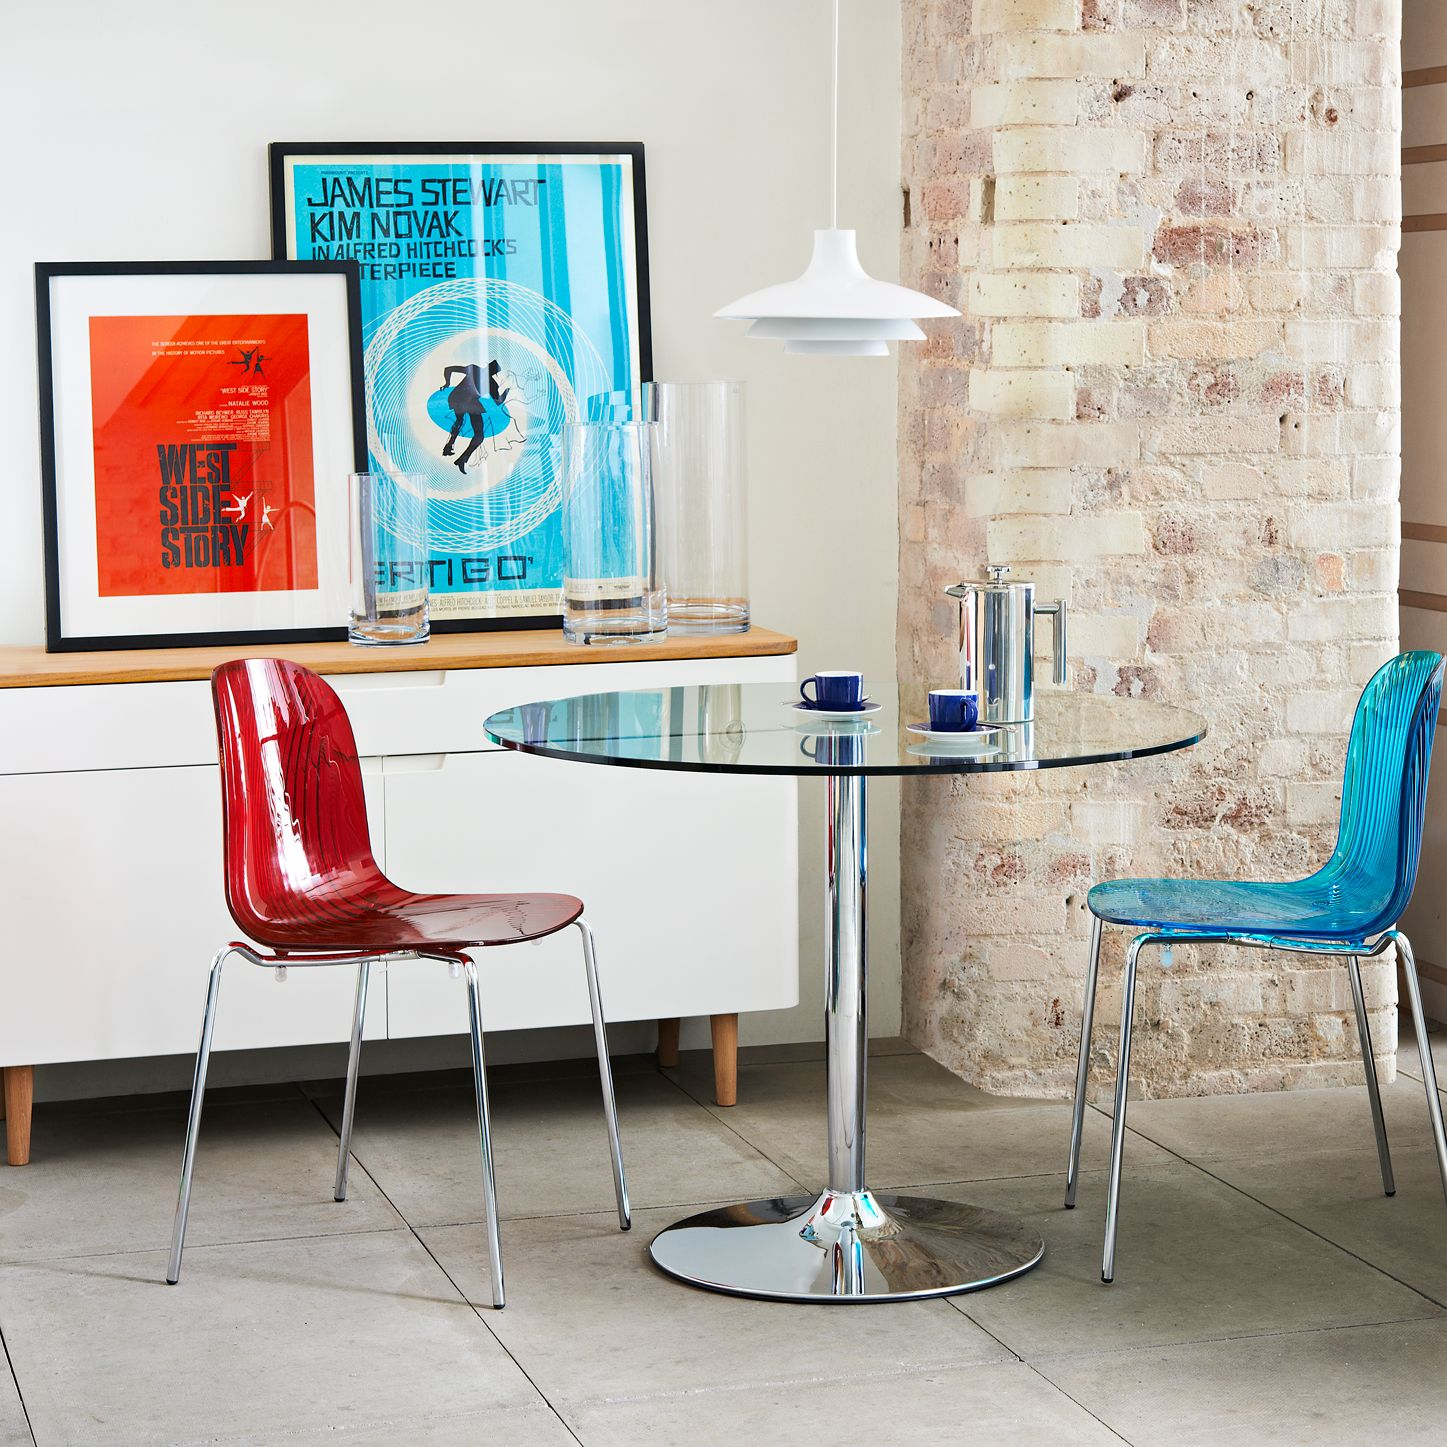 john lewis dining room furniture : 13c02hi10201zoom from www.comparestoreprices.co.uk size 1447 x 1447 jpeg 350kB